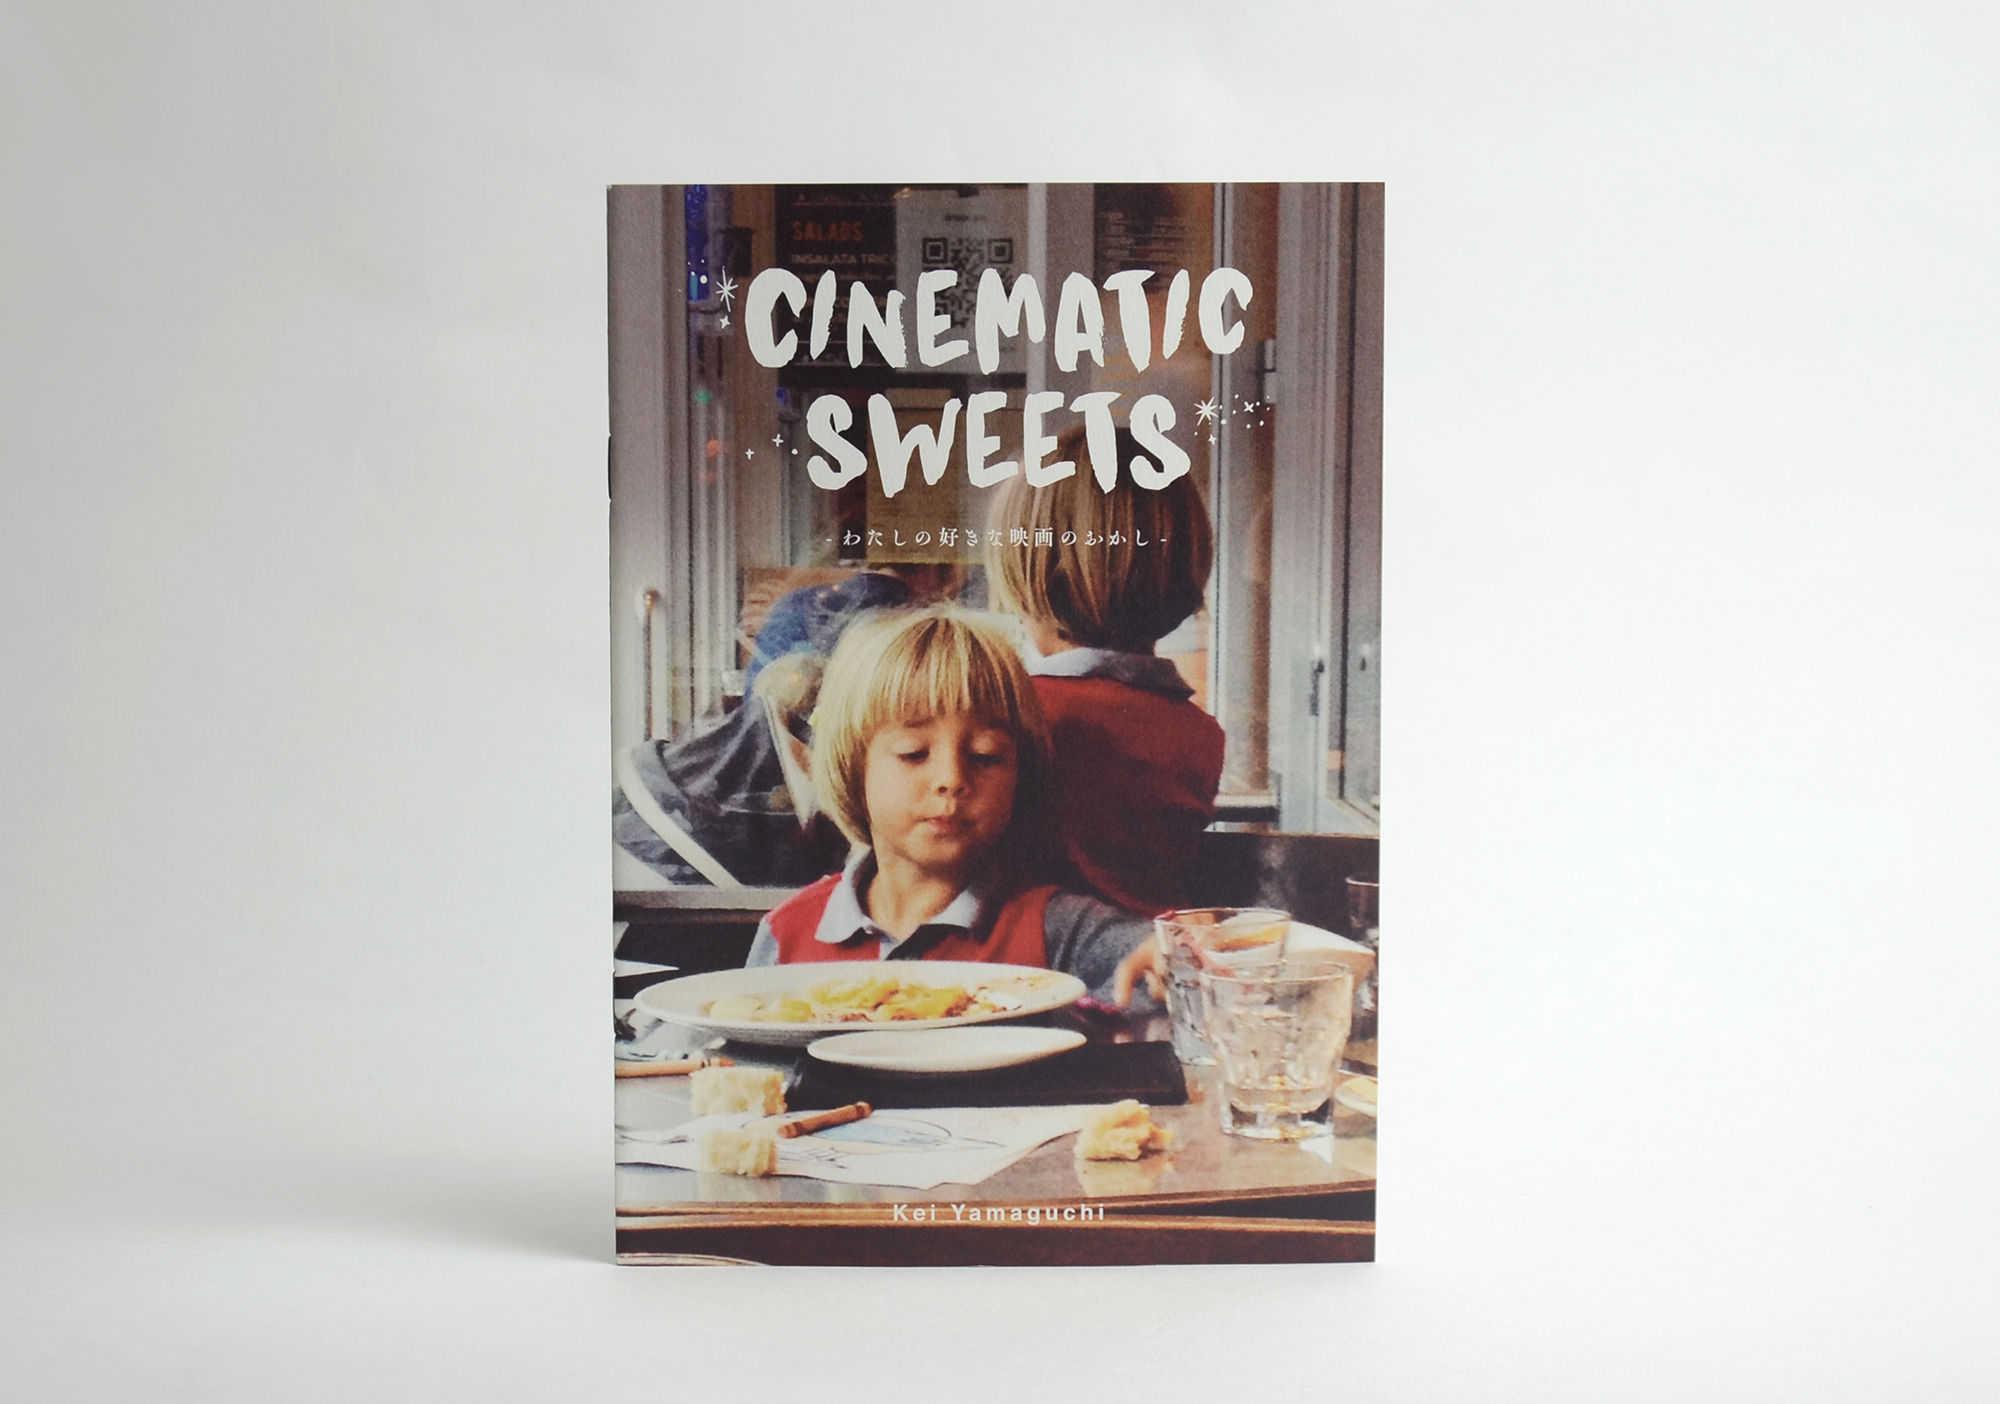 CINEMATIC SWEETS